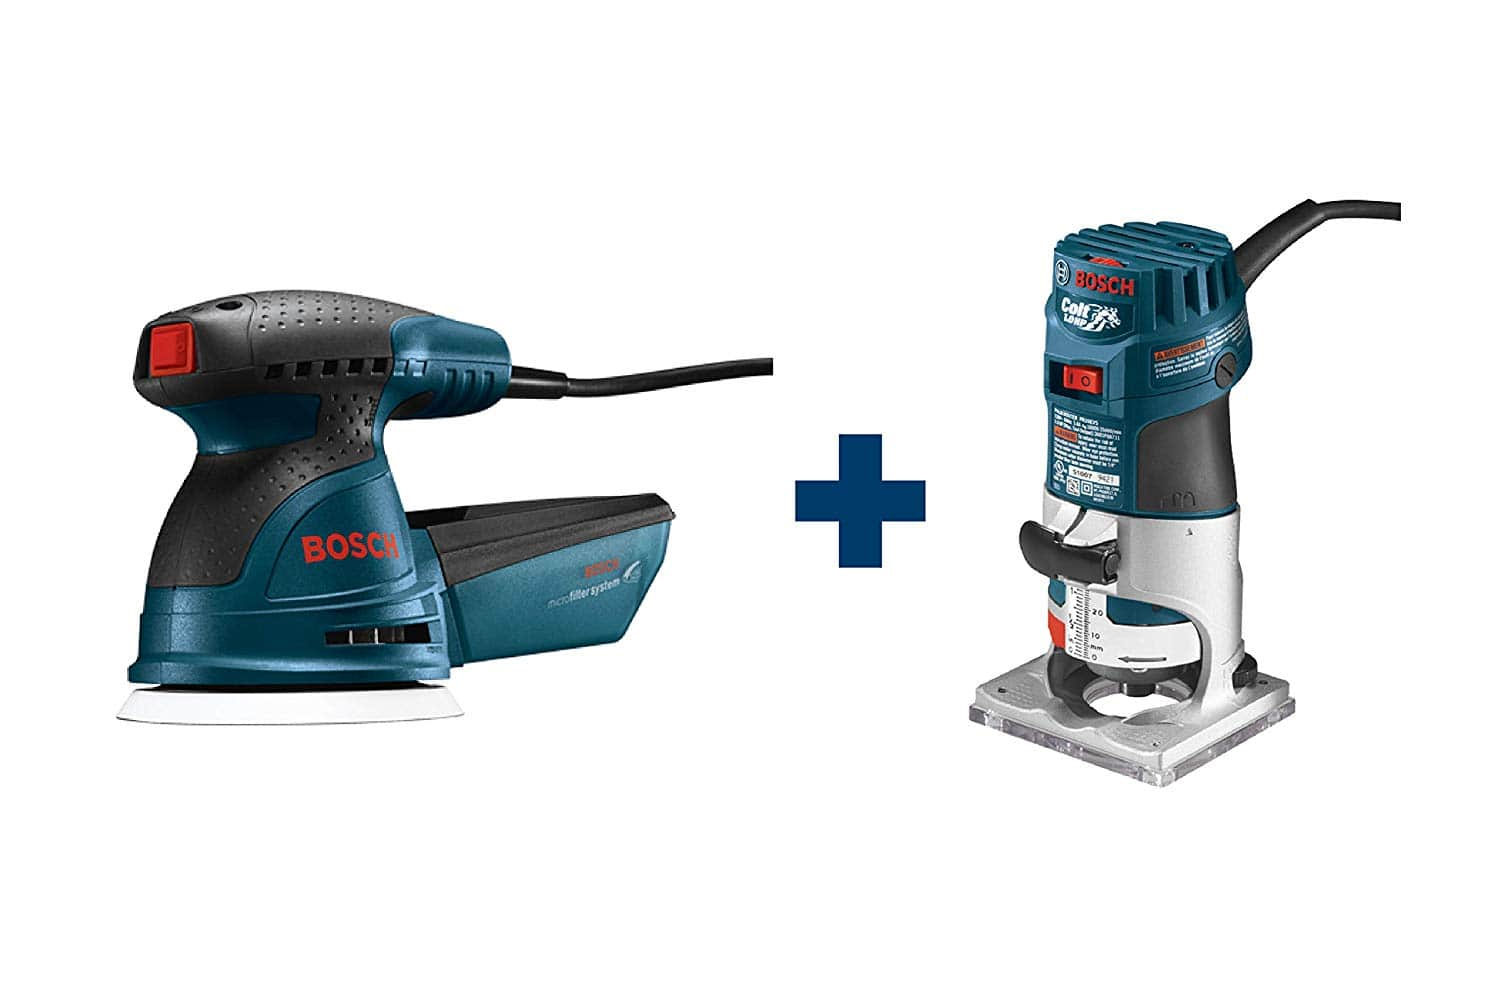 """Bosch Colt 1HP 5.6 Amp Variable-Speed Palm Router + 2.5 Amp 5"""" Variable-Speed Random Orbital Sander Kit w/ Dust Collector & Bag $106.99 + Free Shipping"""